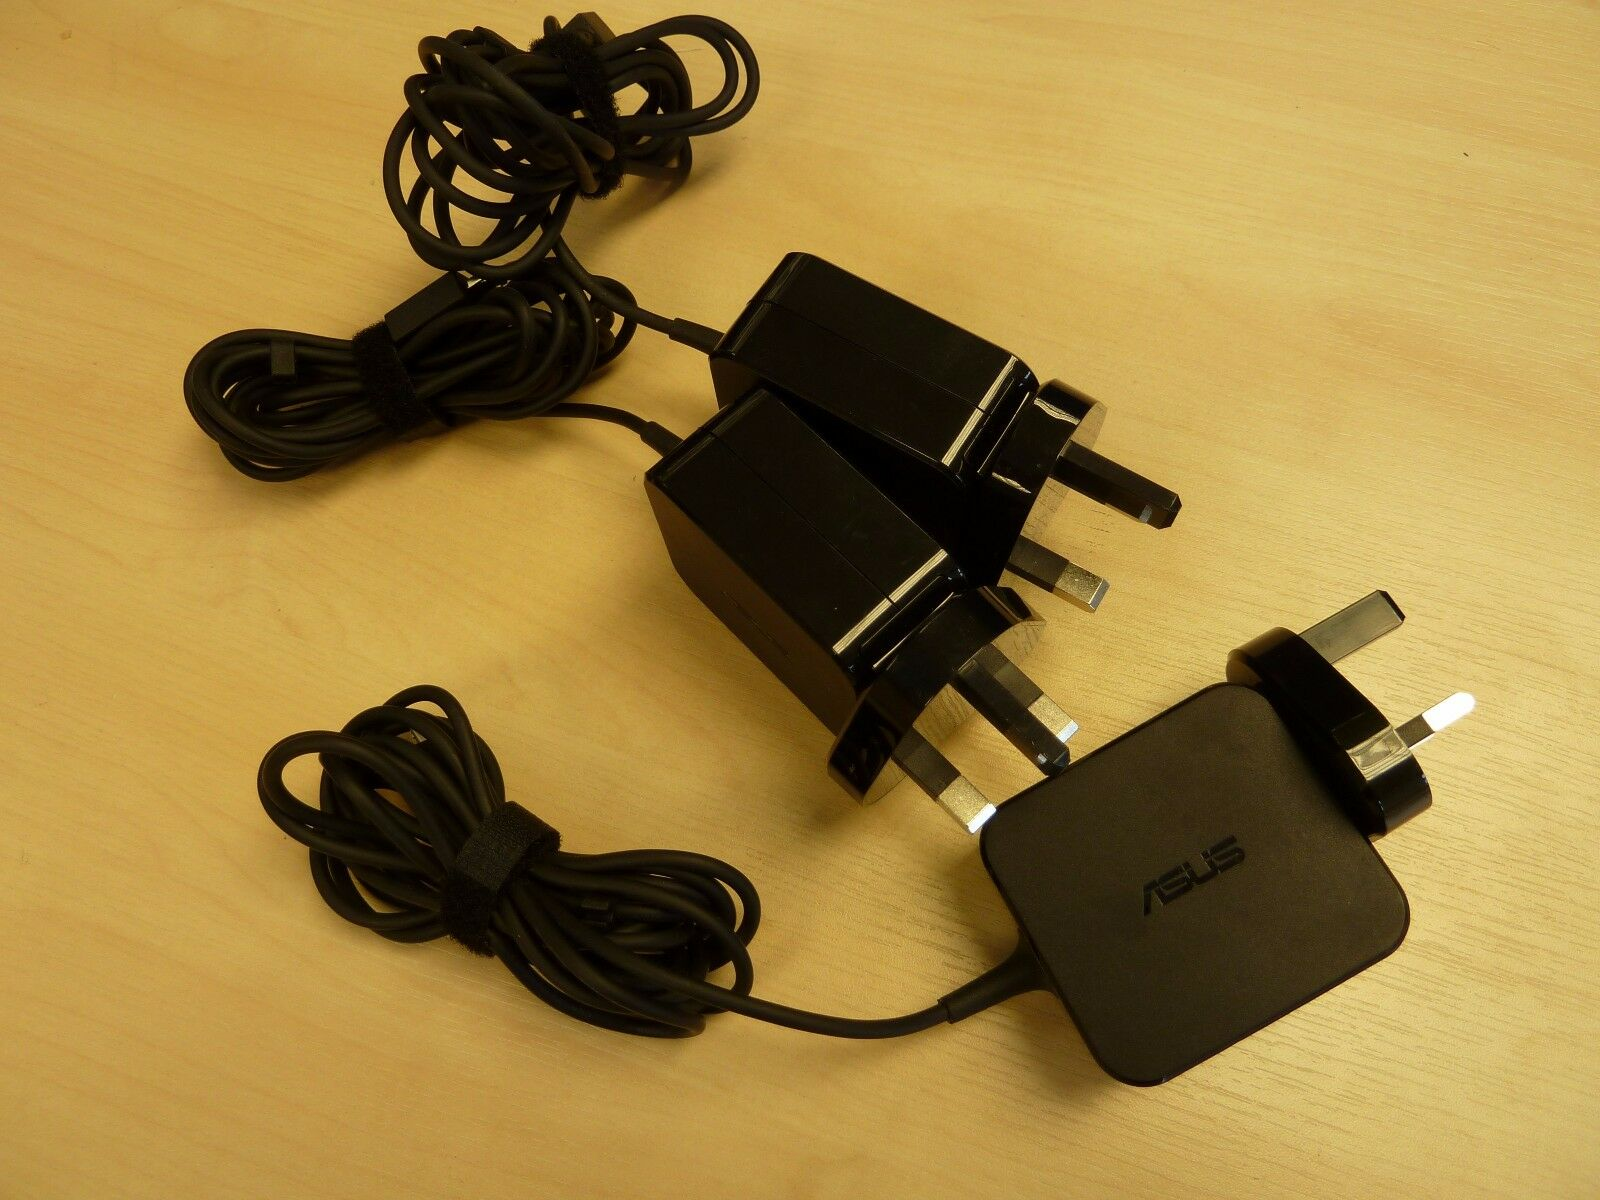 Genuine Asus Ad890m26 010d 1lf Charger For Laptops Excellent Desktop Lf 1 Of 4 See More